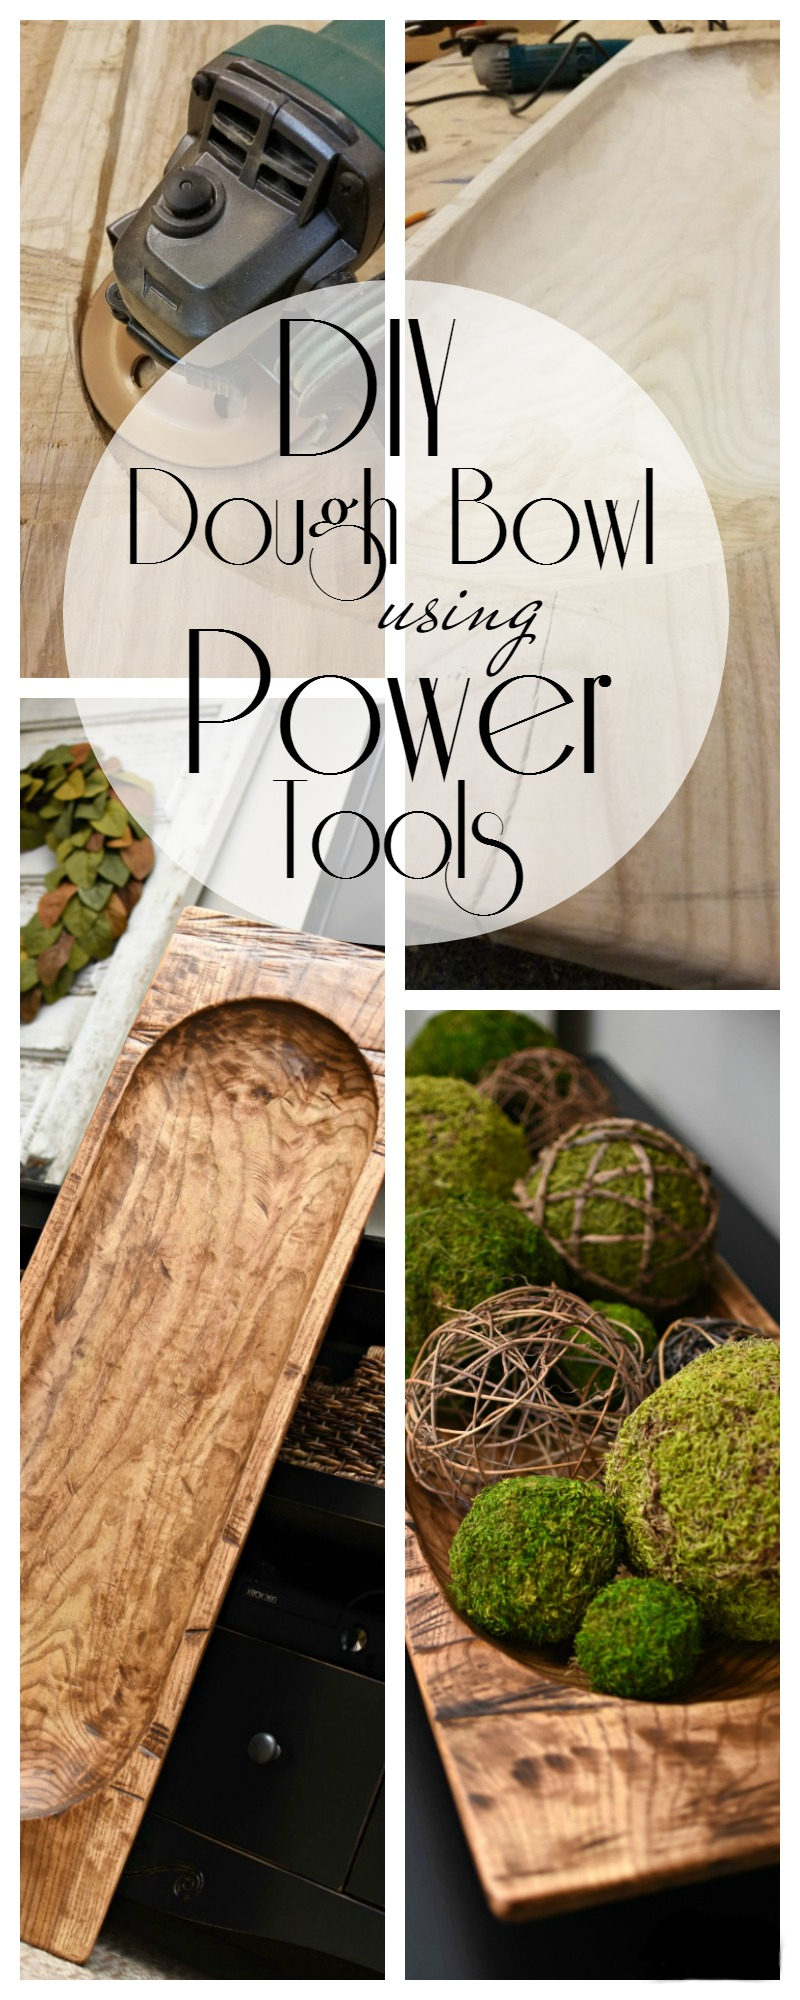 Diy Dough Bowl Using Power Tools A Wonderful Thought